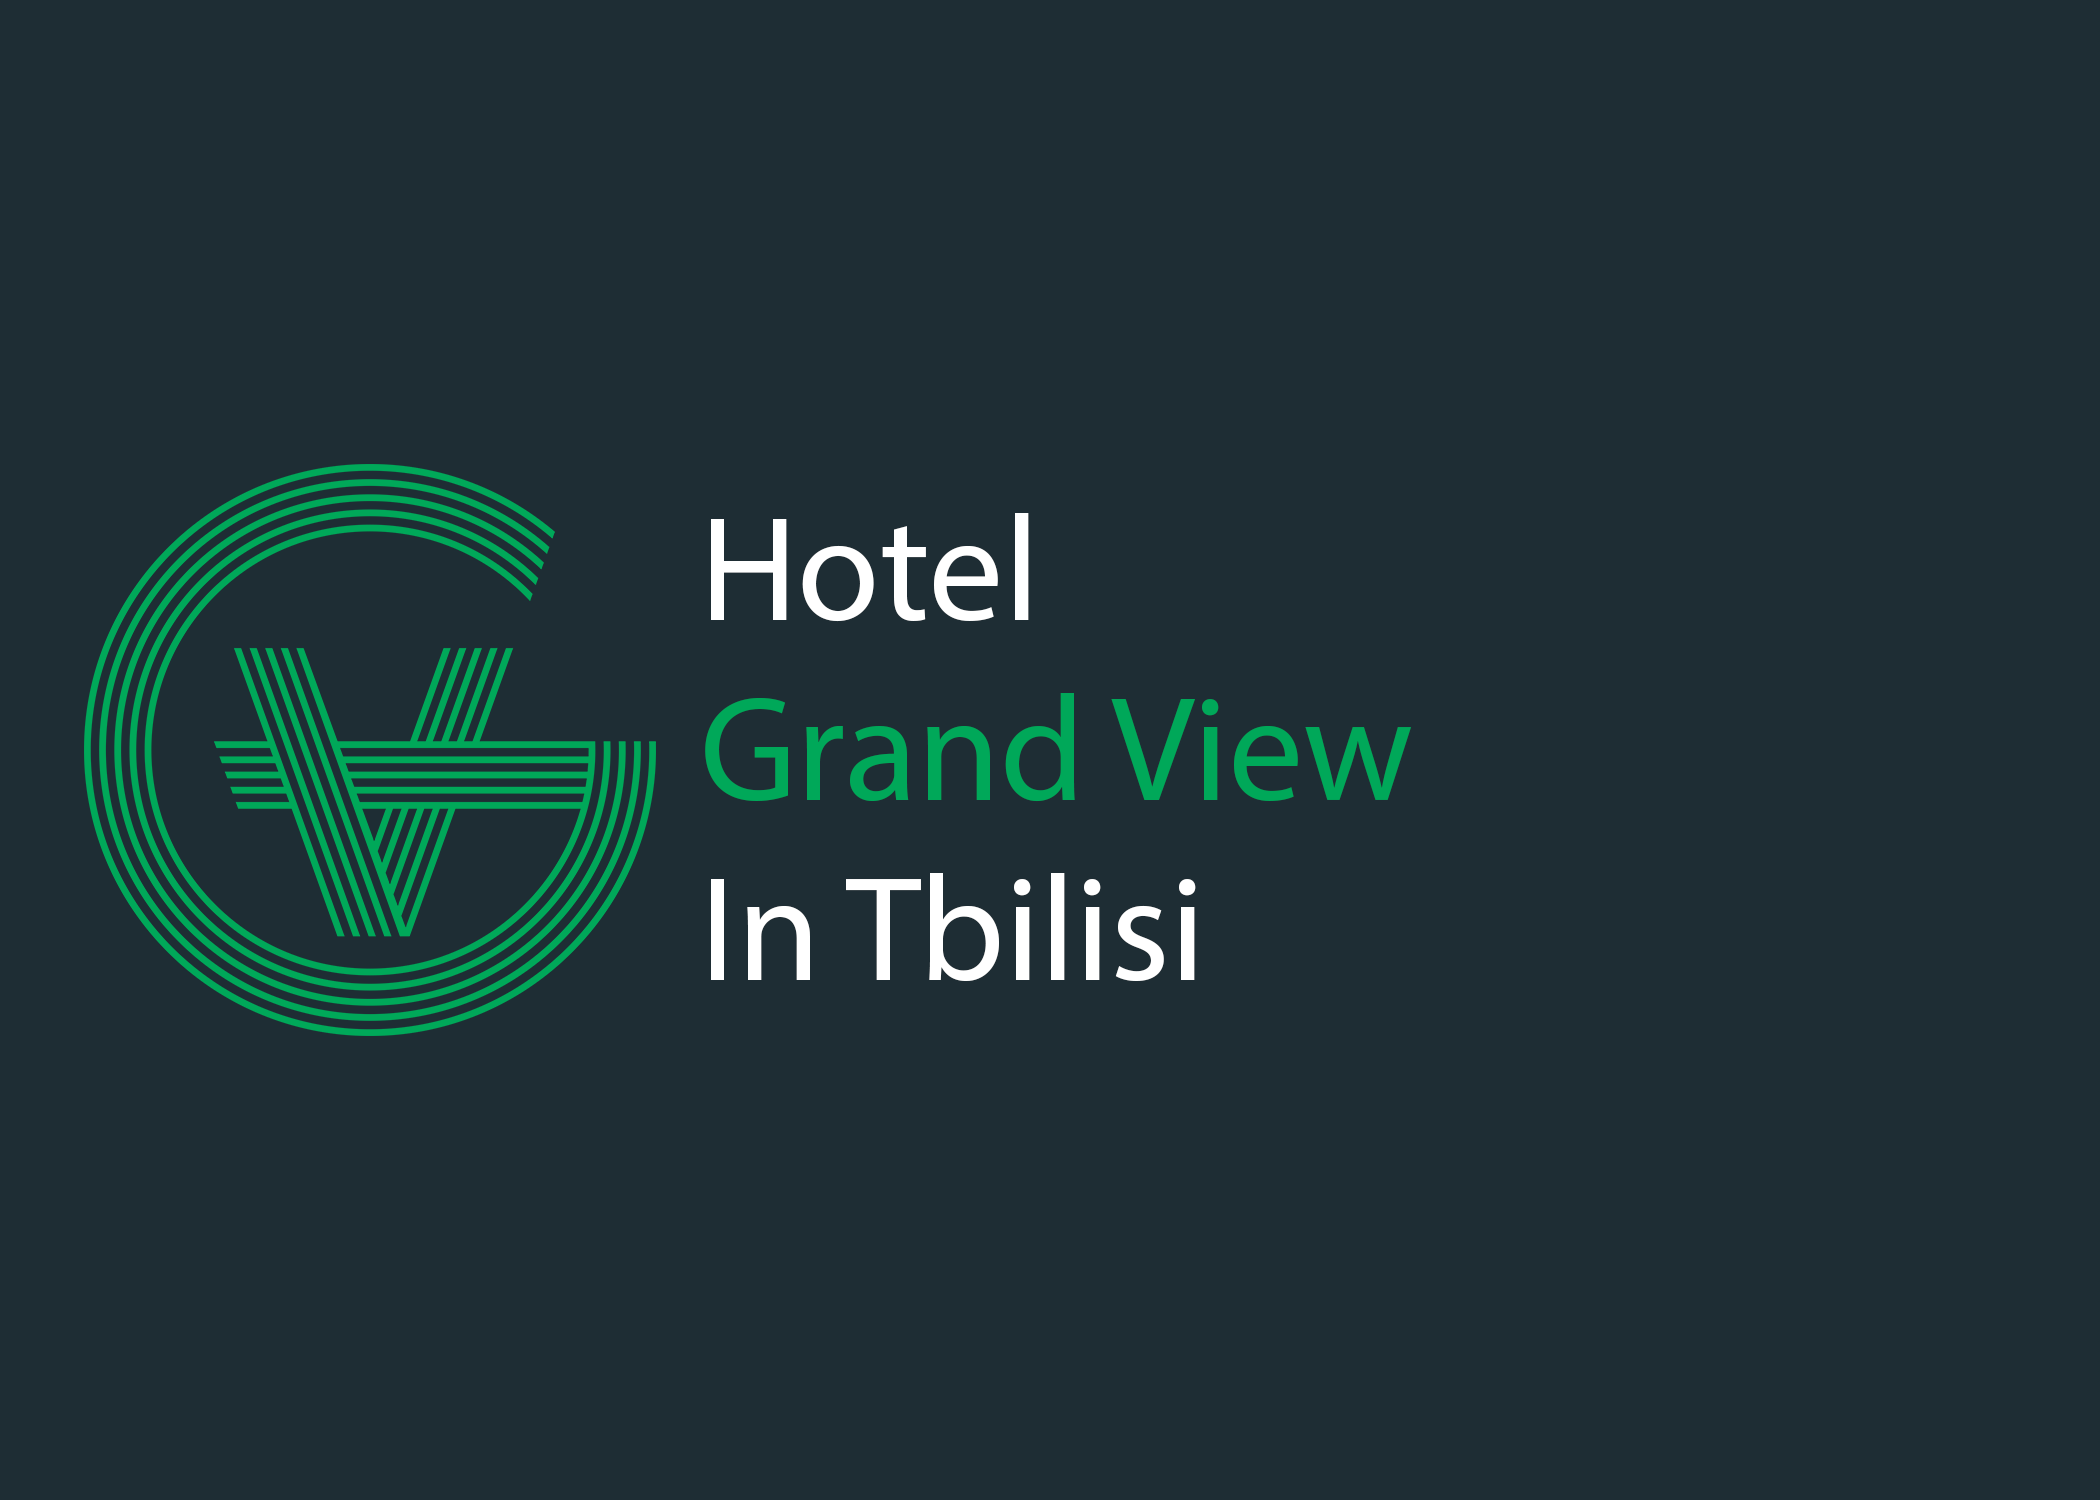 Hotel Grand View In Tbilisi